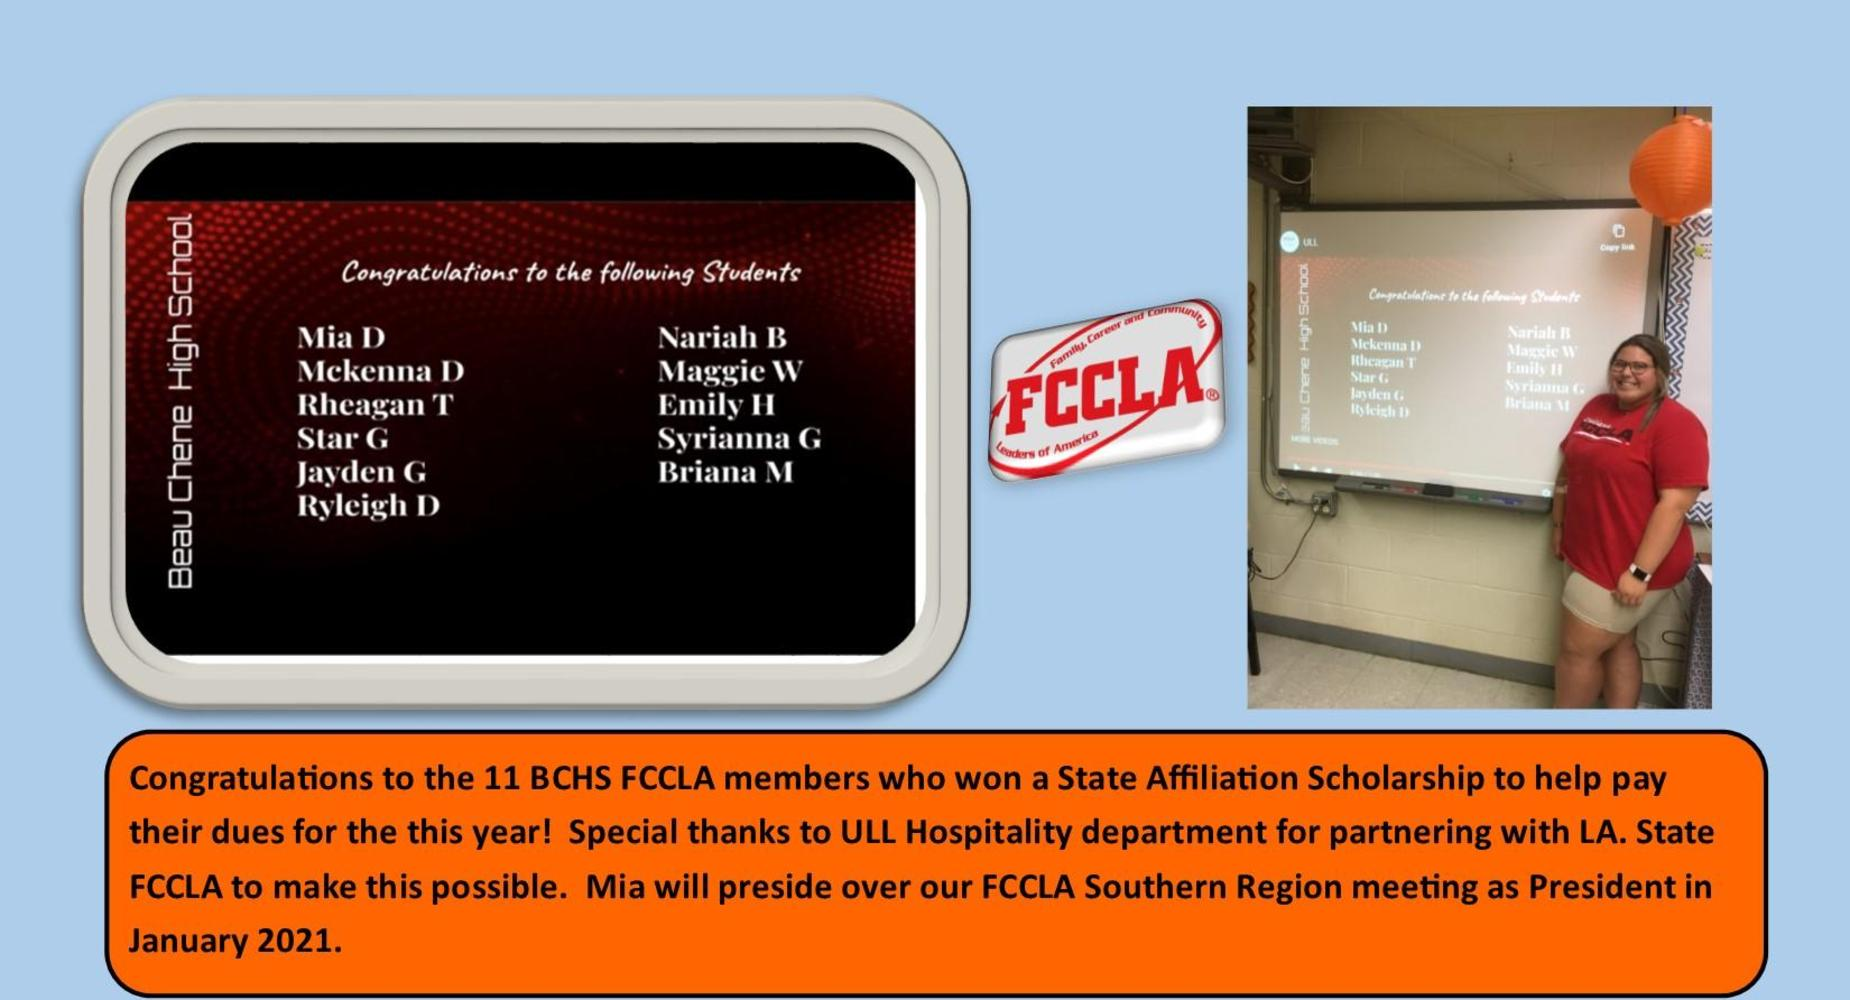 11 BCHS FCCLA members won a State Affiliation Scholarship.